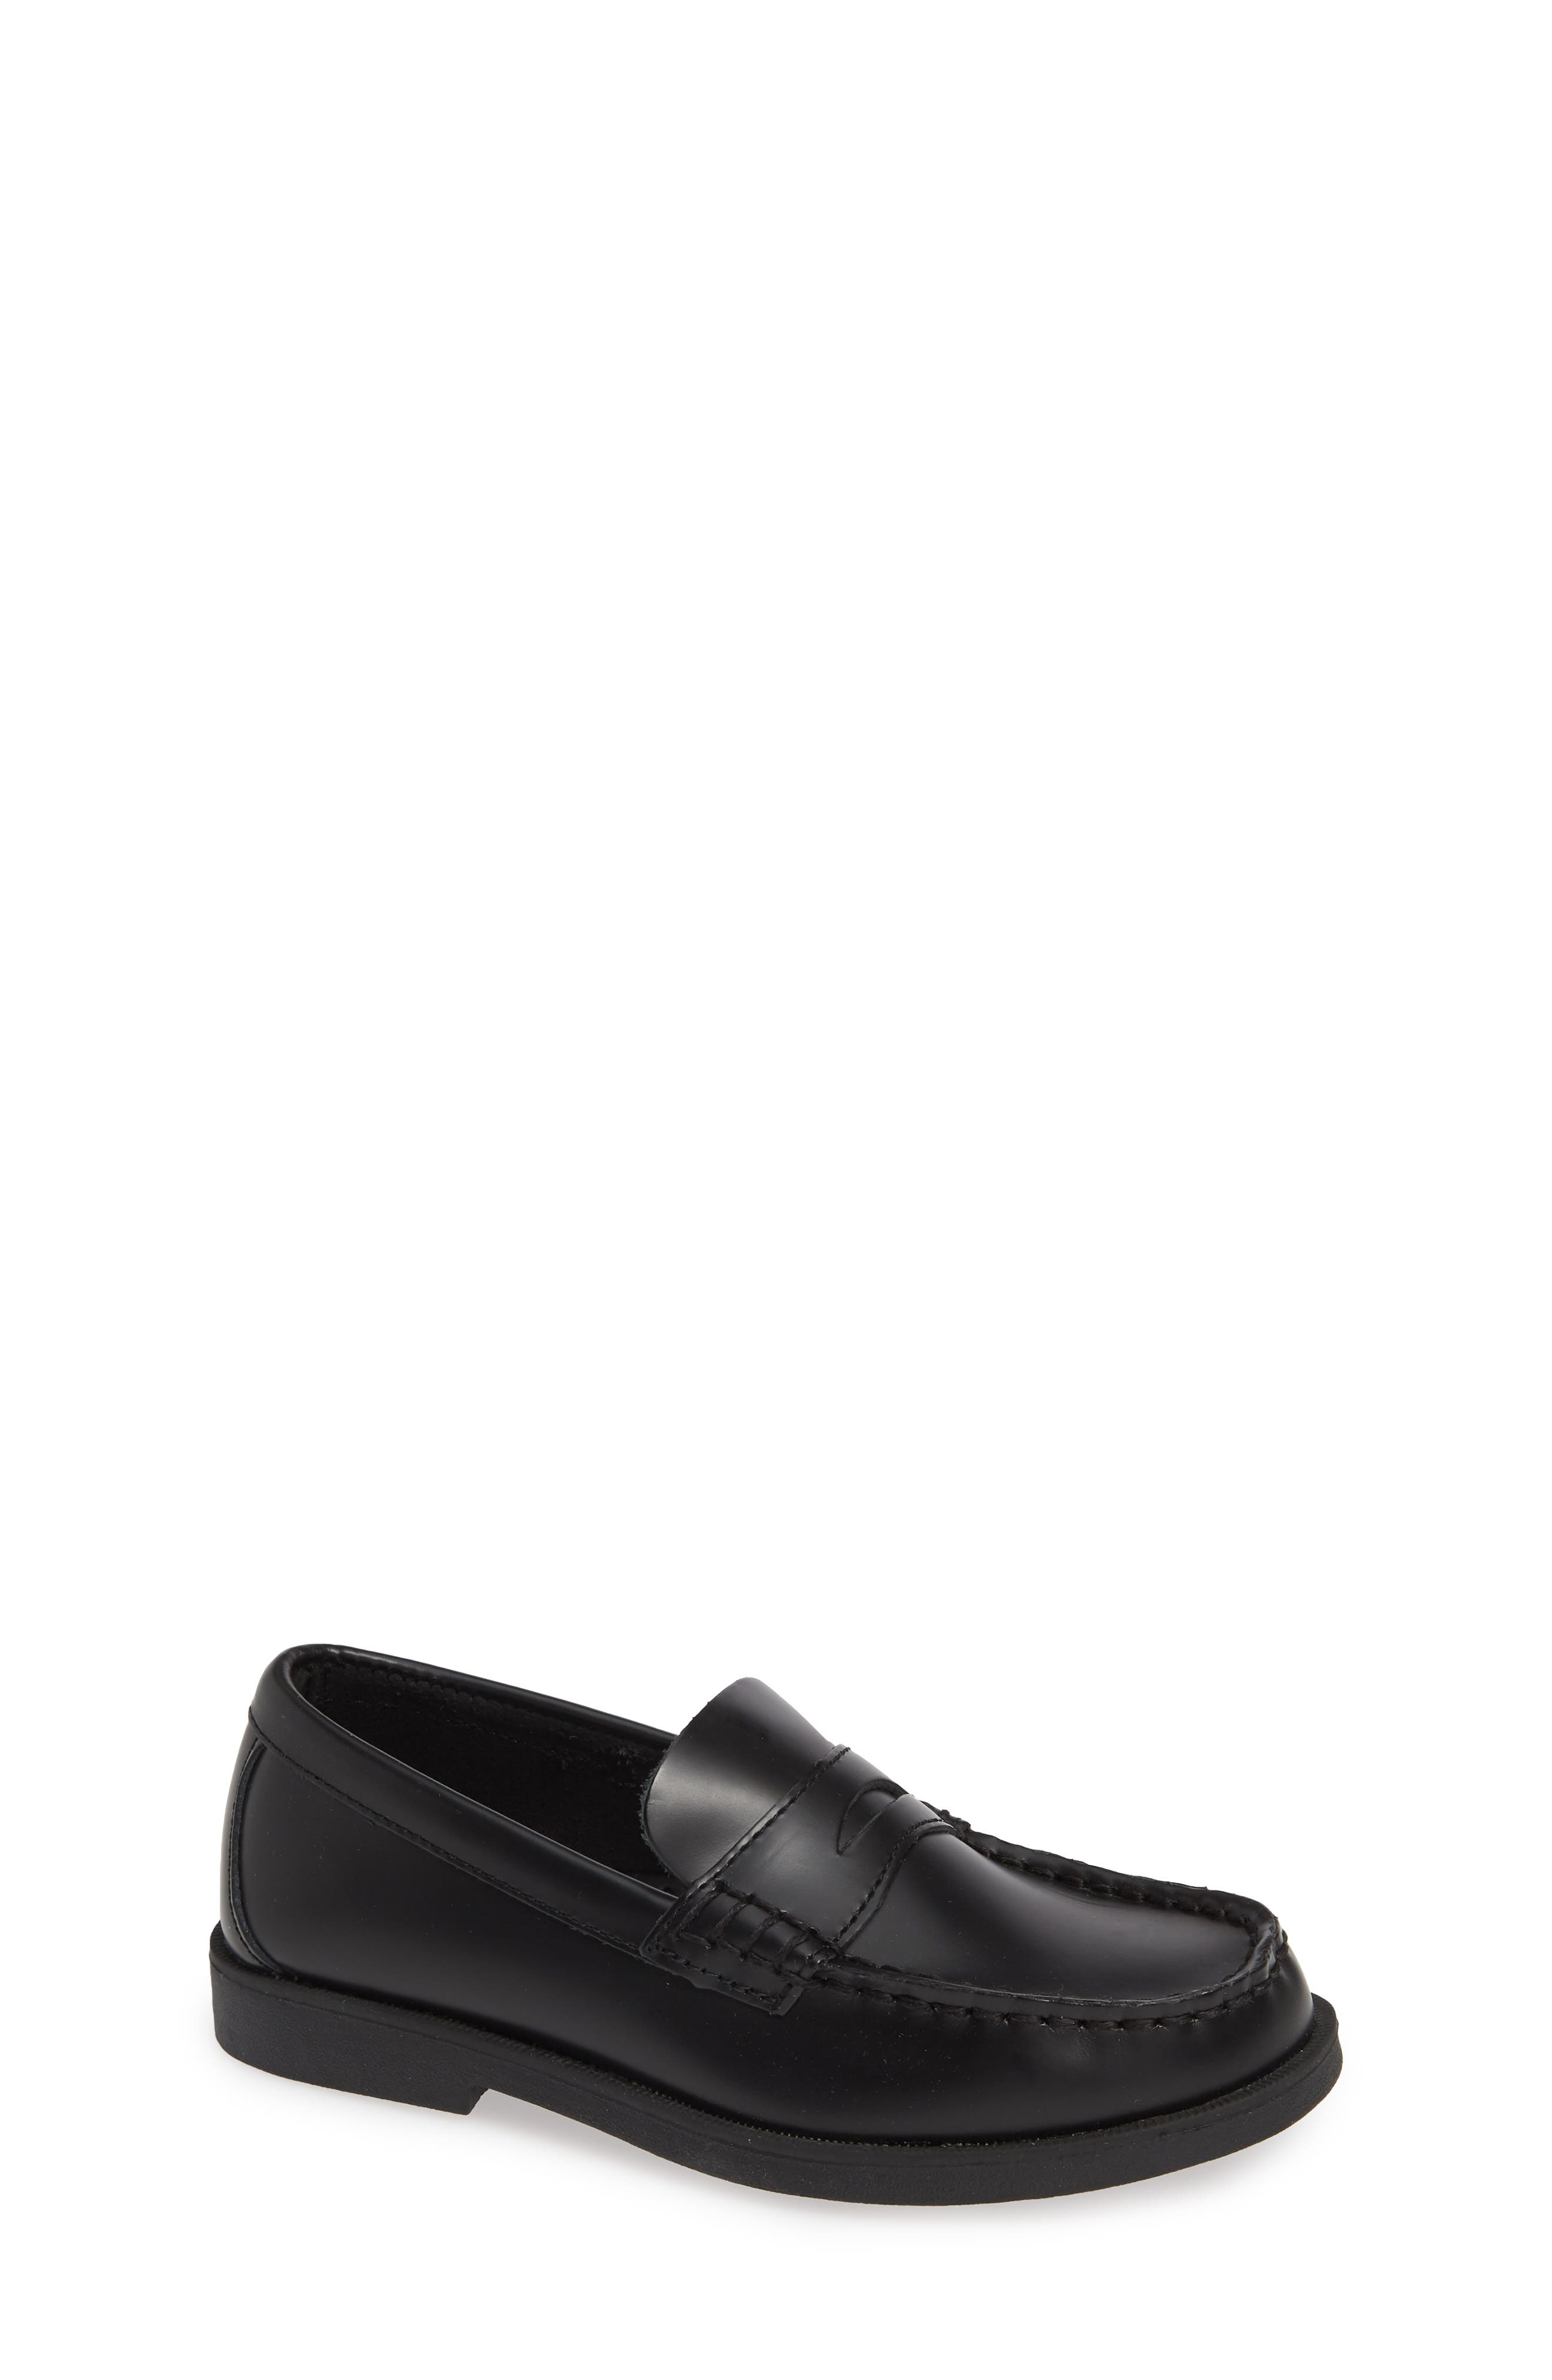 SPERRY KIDS,                             'Colton' Loafer,                             Alternate thumbnail 2, color,                             BLACK LEATHER